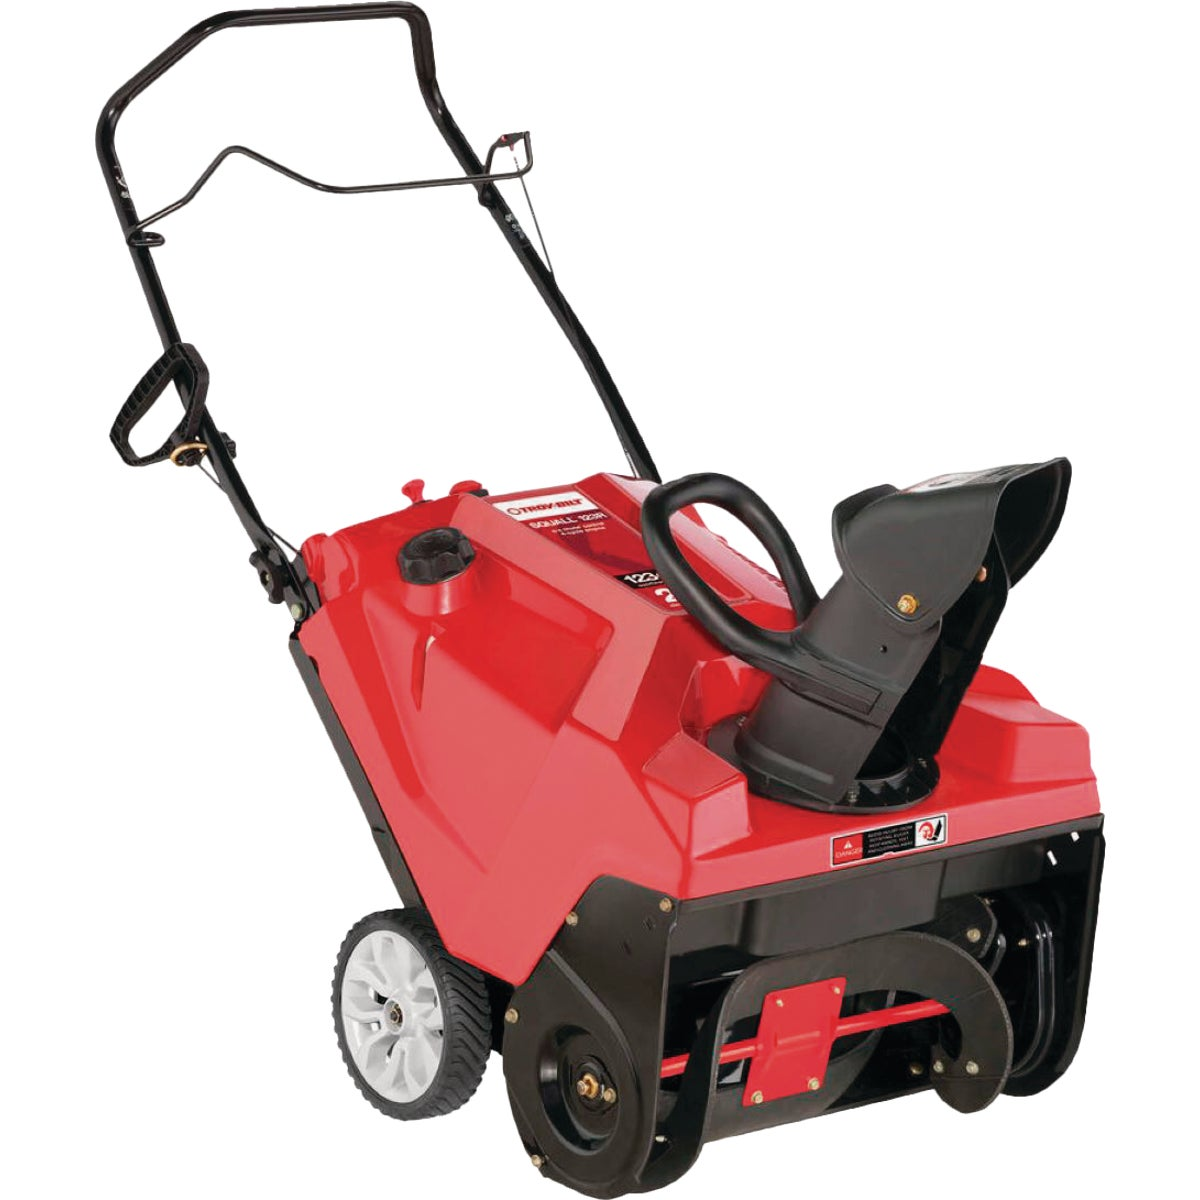 SGL STAGE SNOWTHROWER - 31A-2M1E700 by M T D Products